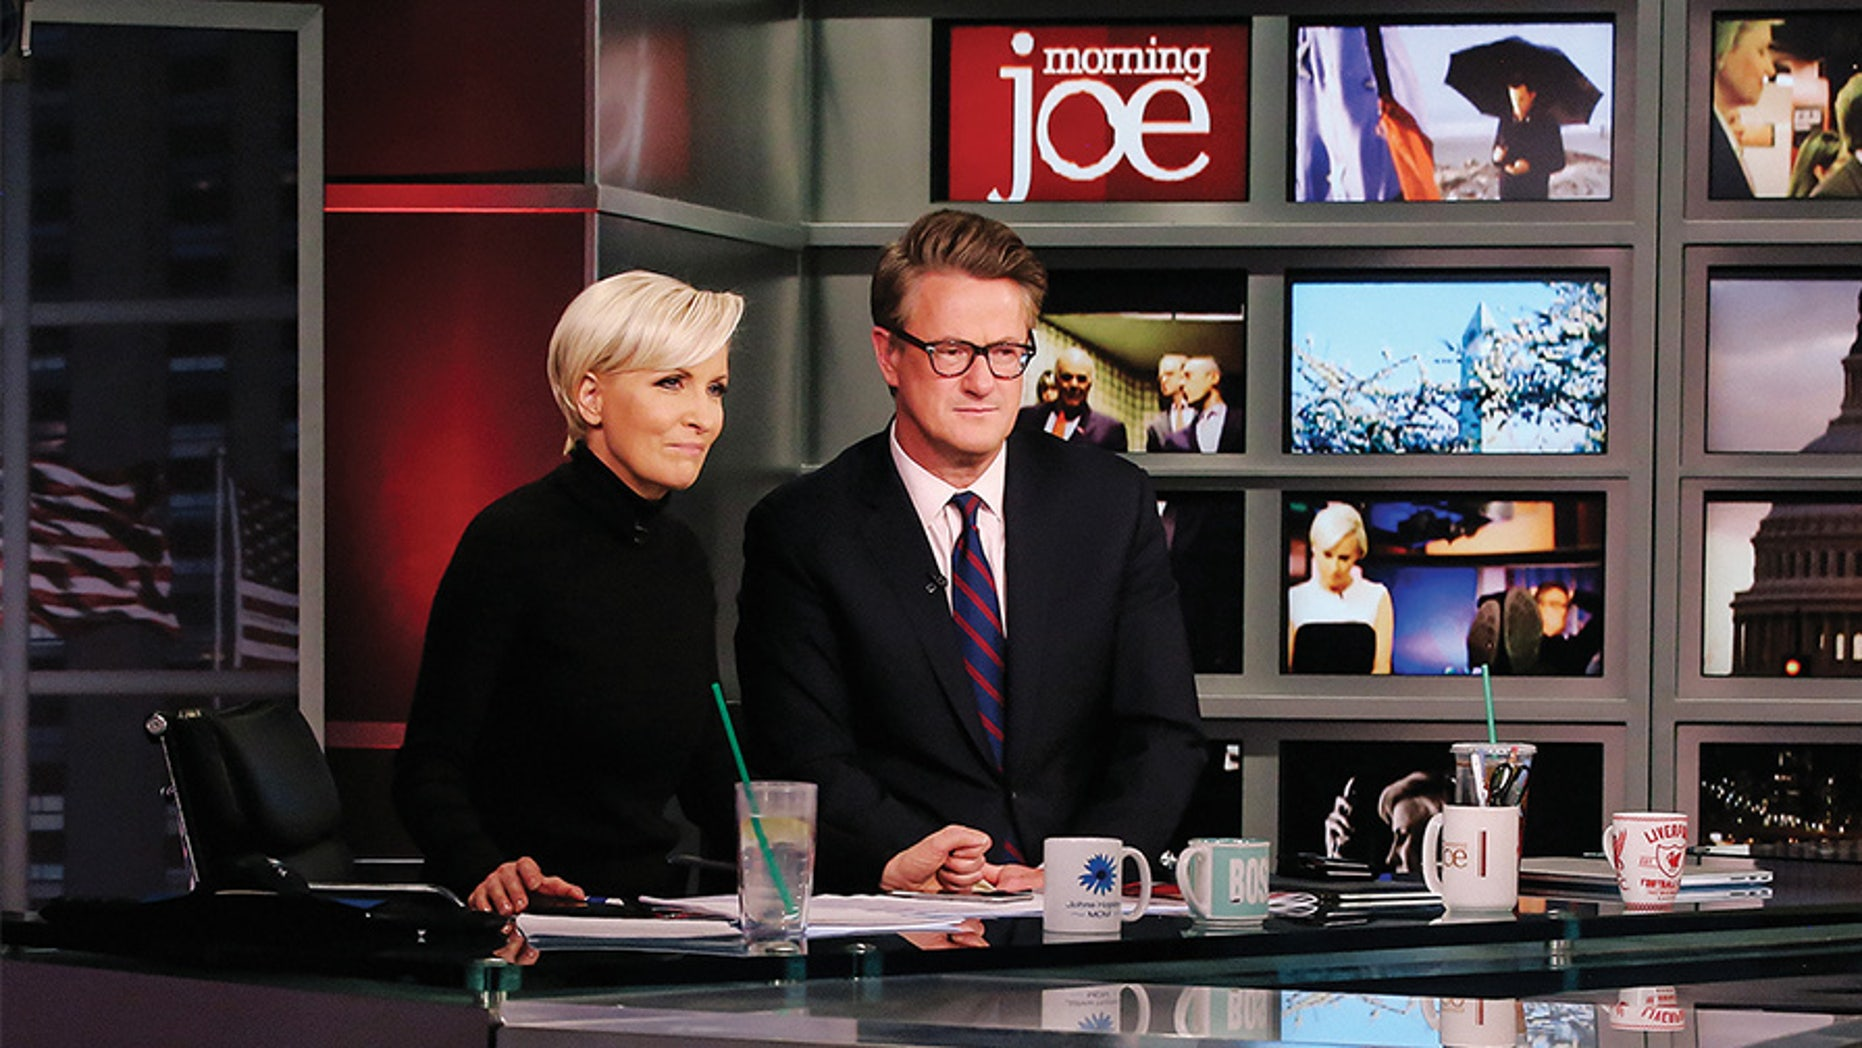 MSNBC's 'Morning Joe' hosts tired to fool their viewers with pre-taped post-Thanksgiving show.